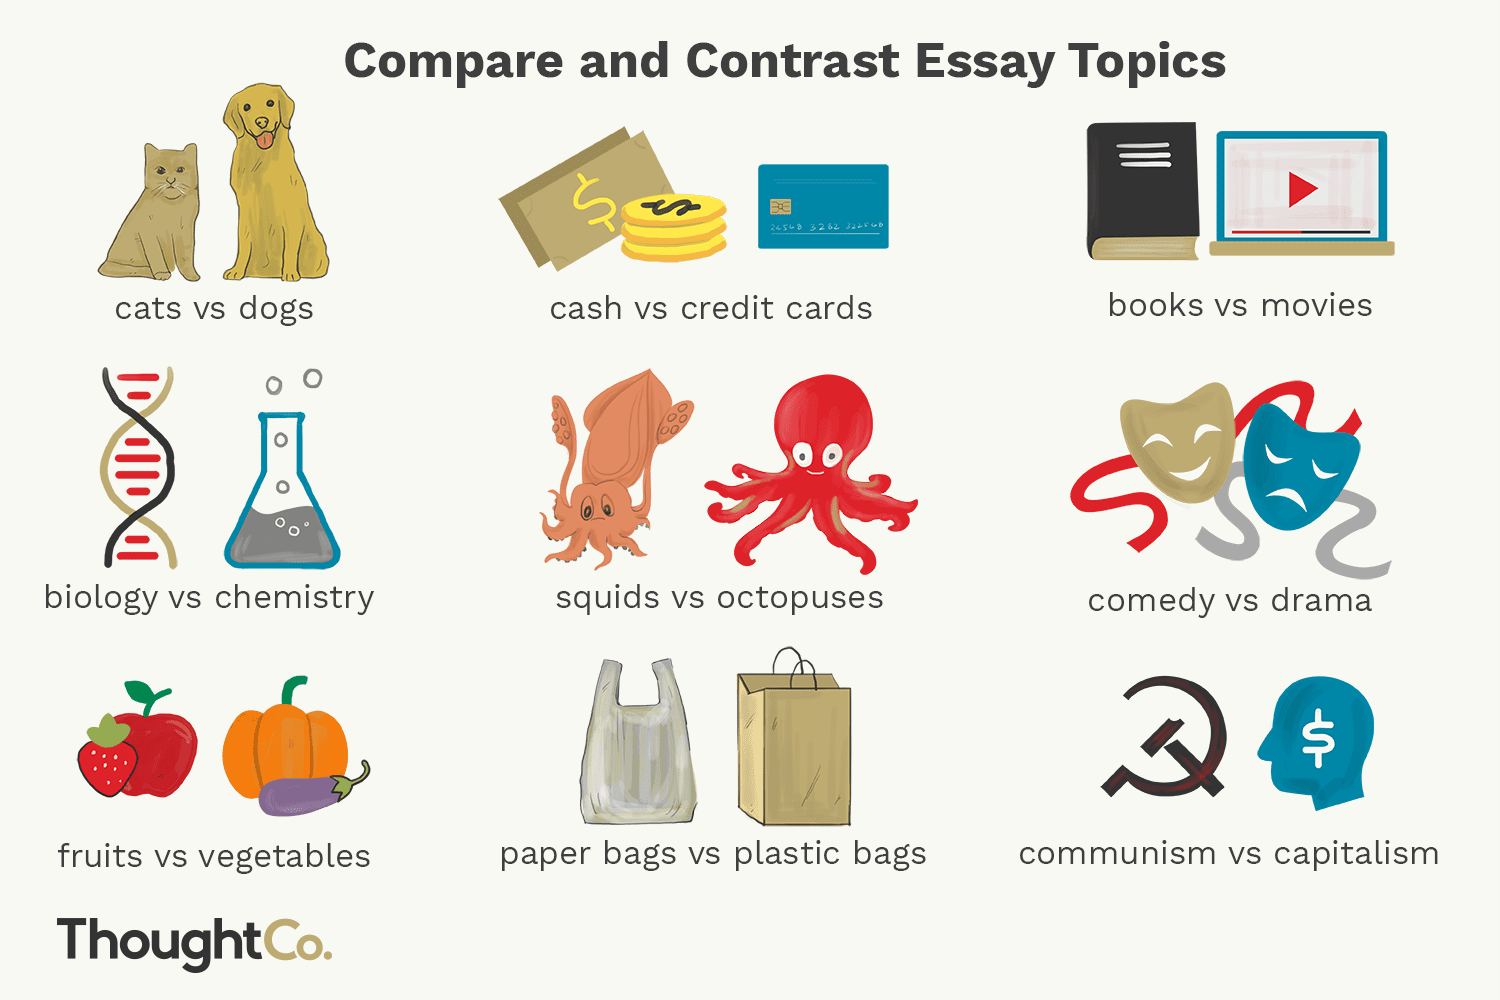 These Compare And Contrast Essay Topic Are Great For The Classroom Comparing Contrasting Topics